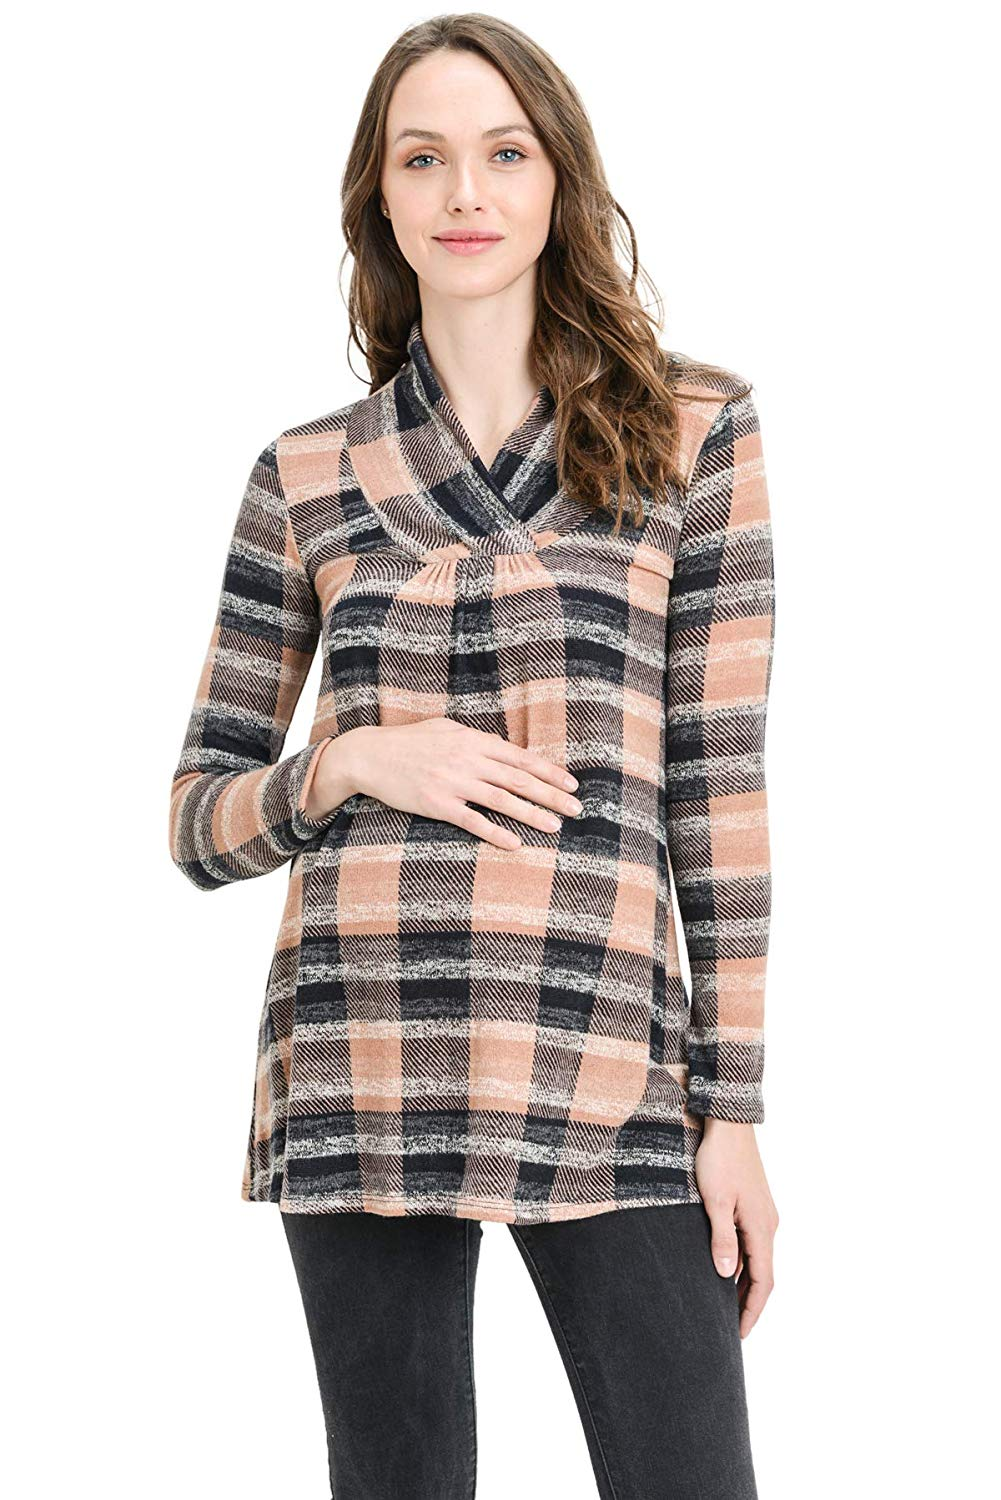 Plaid Maternity Sweater - Mommylicious